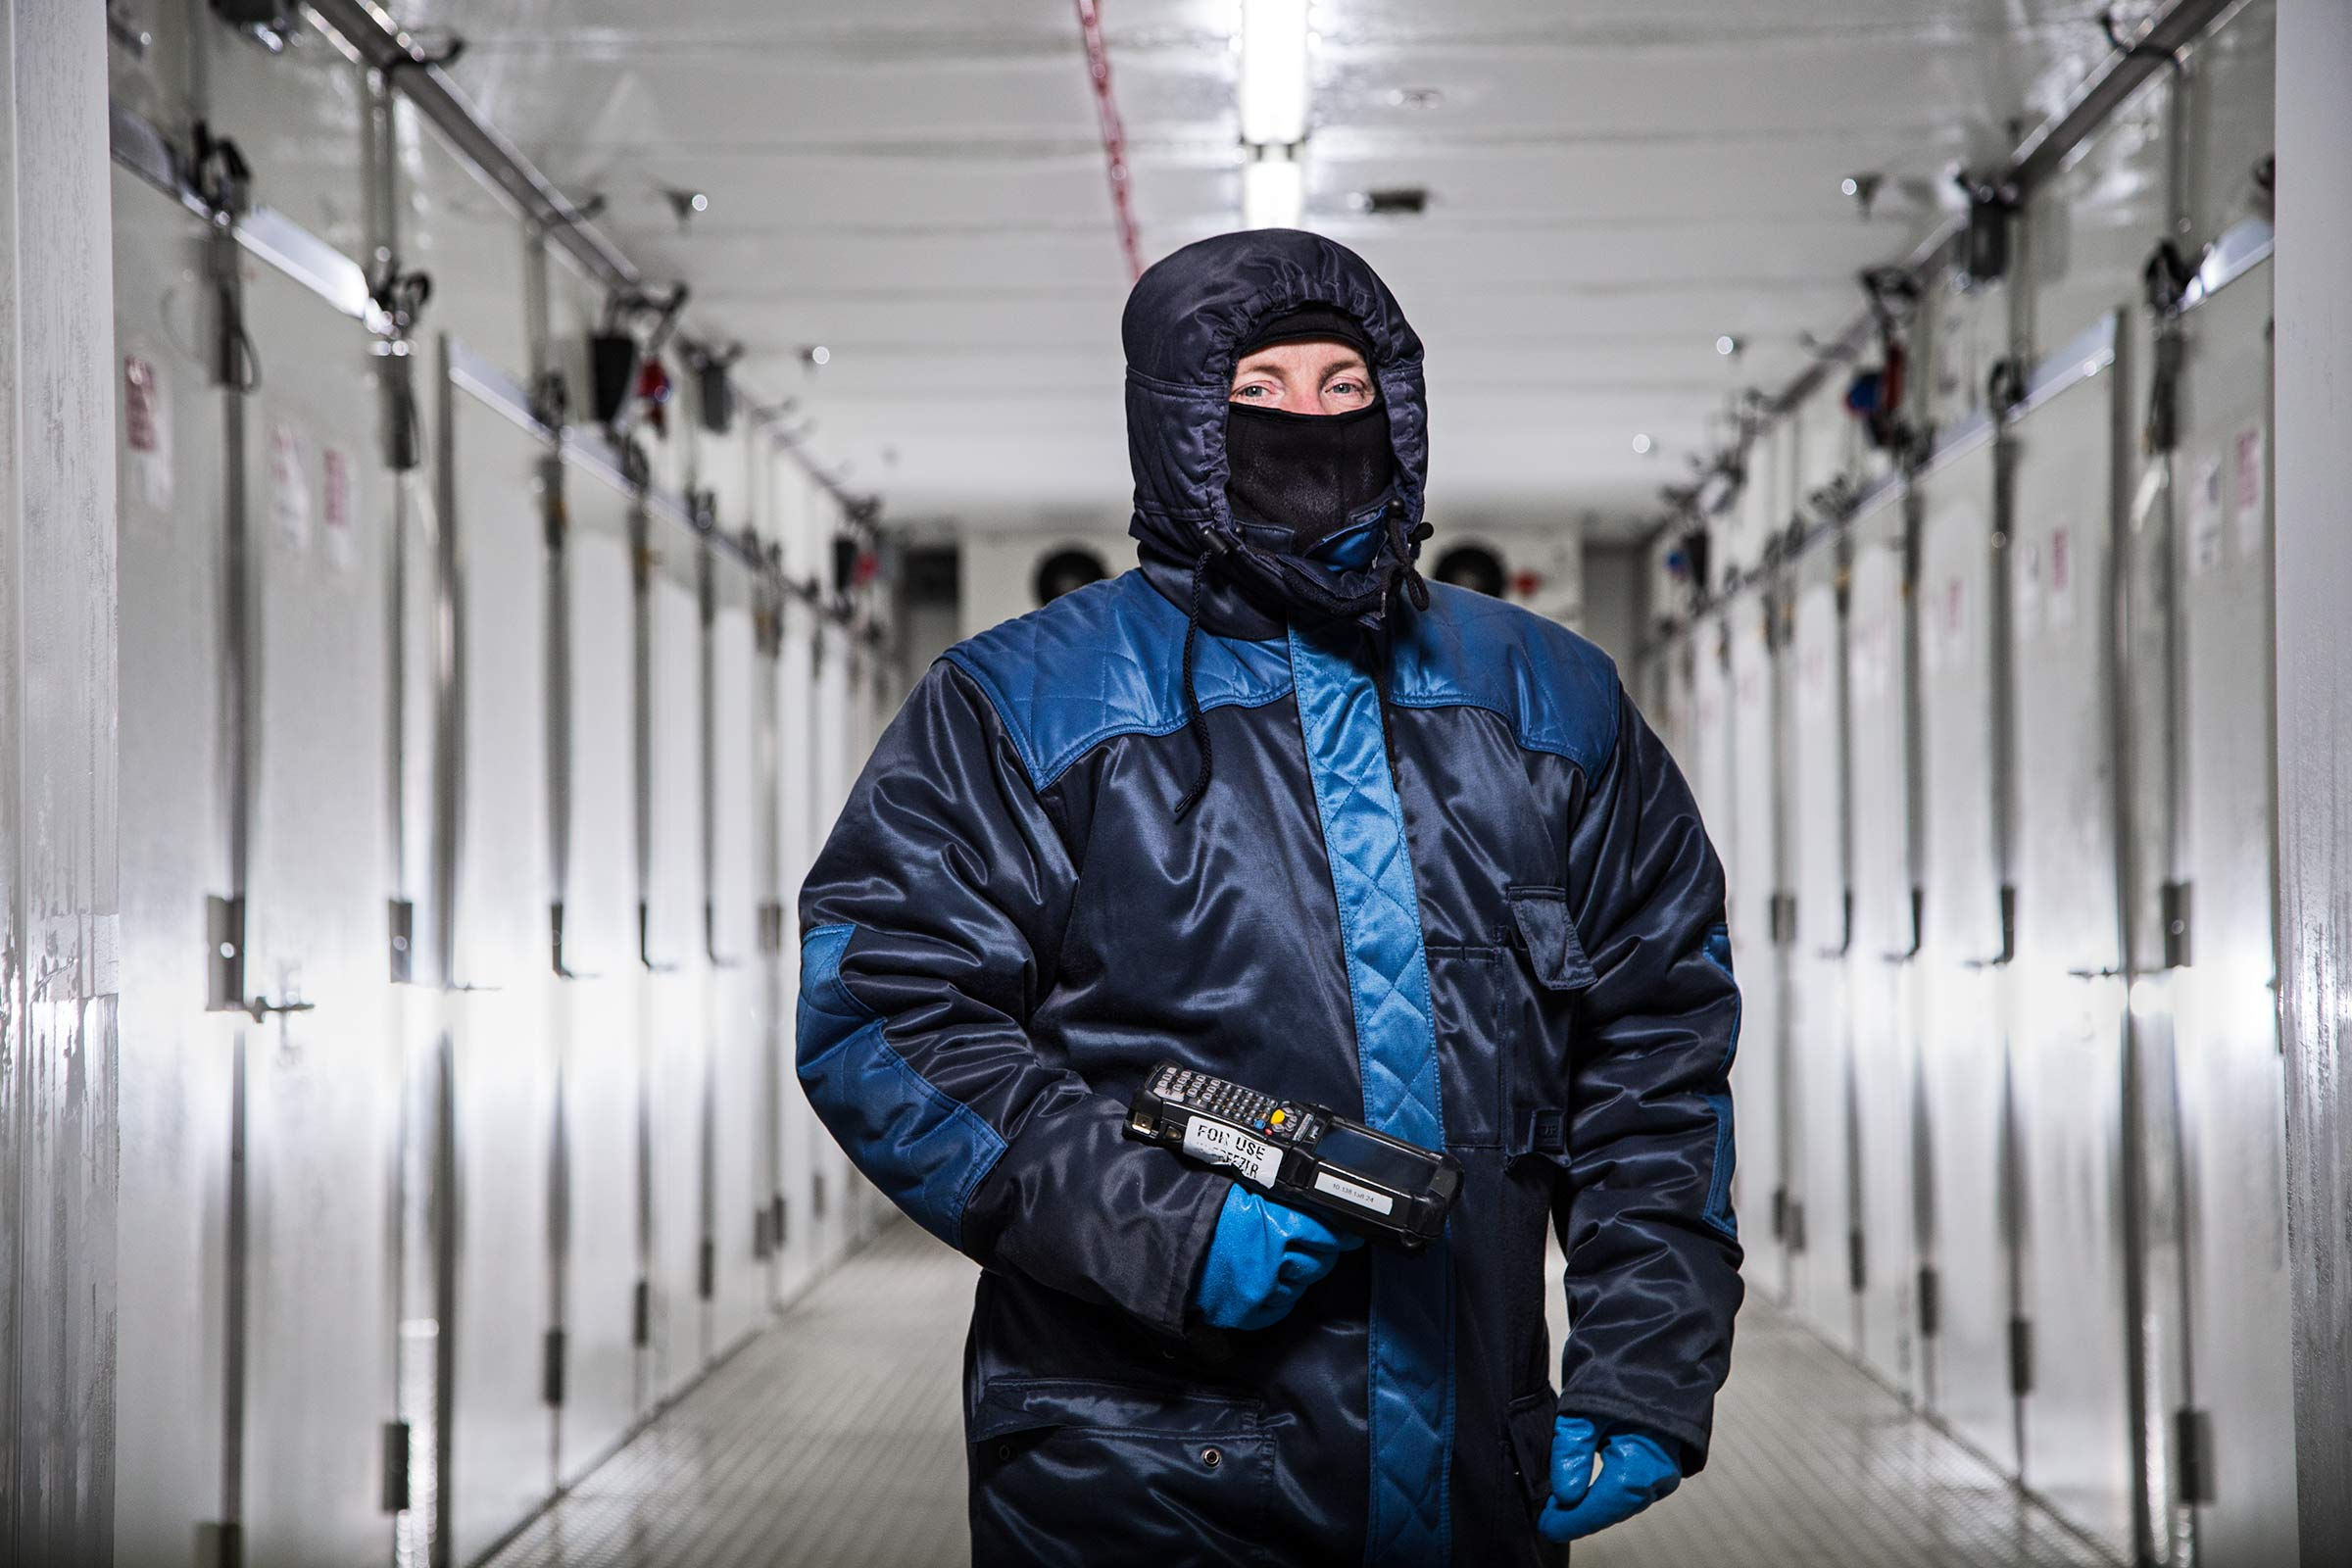 Portrait of a worker wearing protective suit in Subzero freezer Ireland